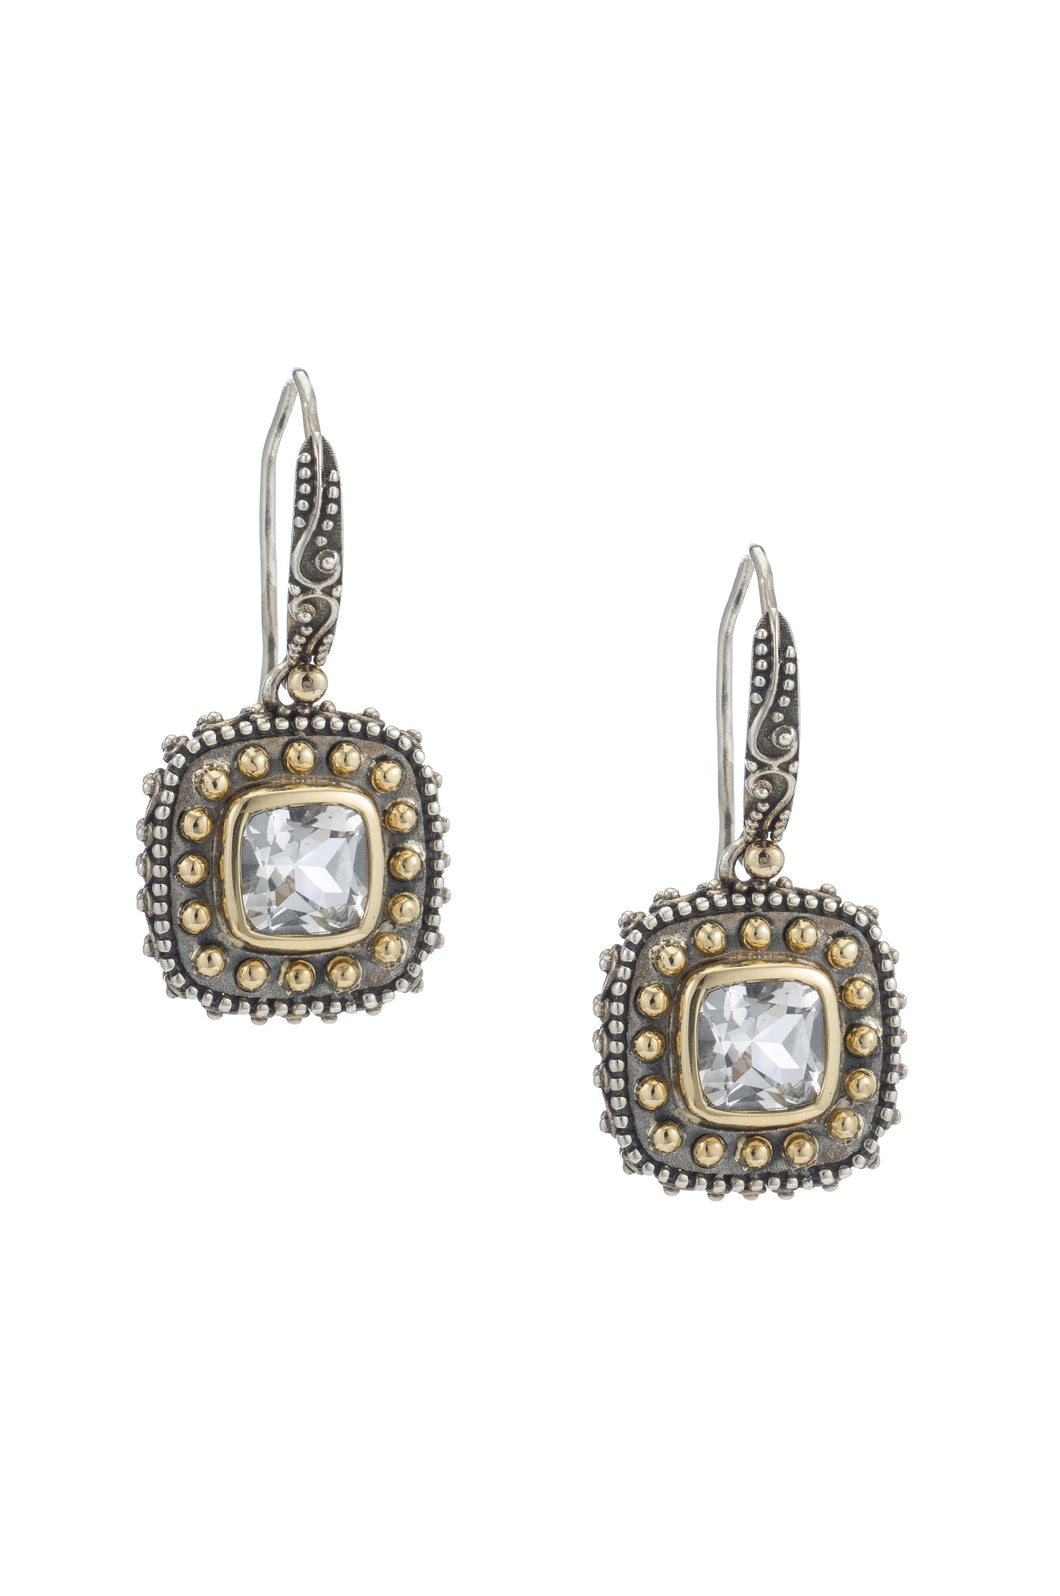 382756ce7 Tiffany Square Beaded Earrings - earring - KIR Collection - designer  sterling silver jewelry